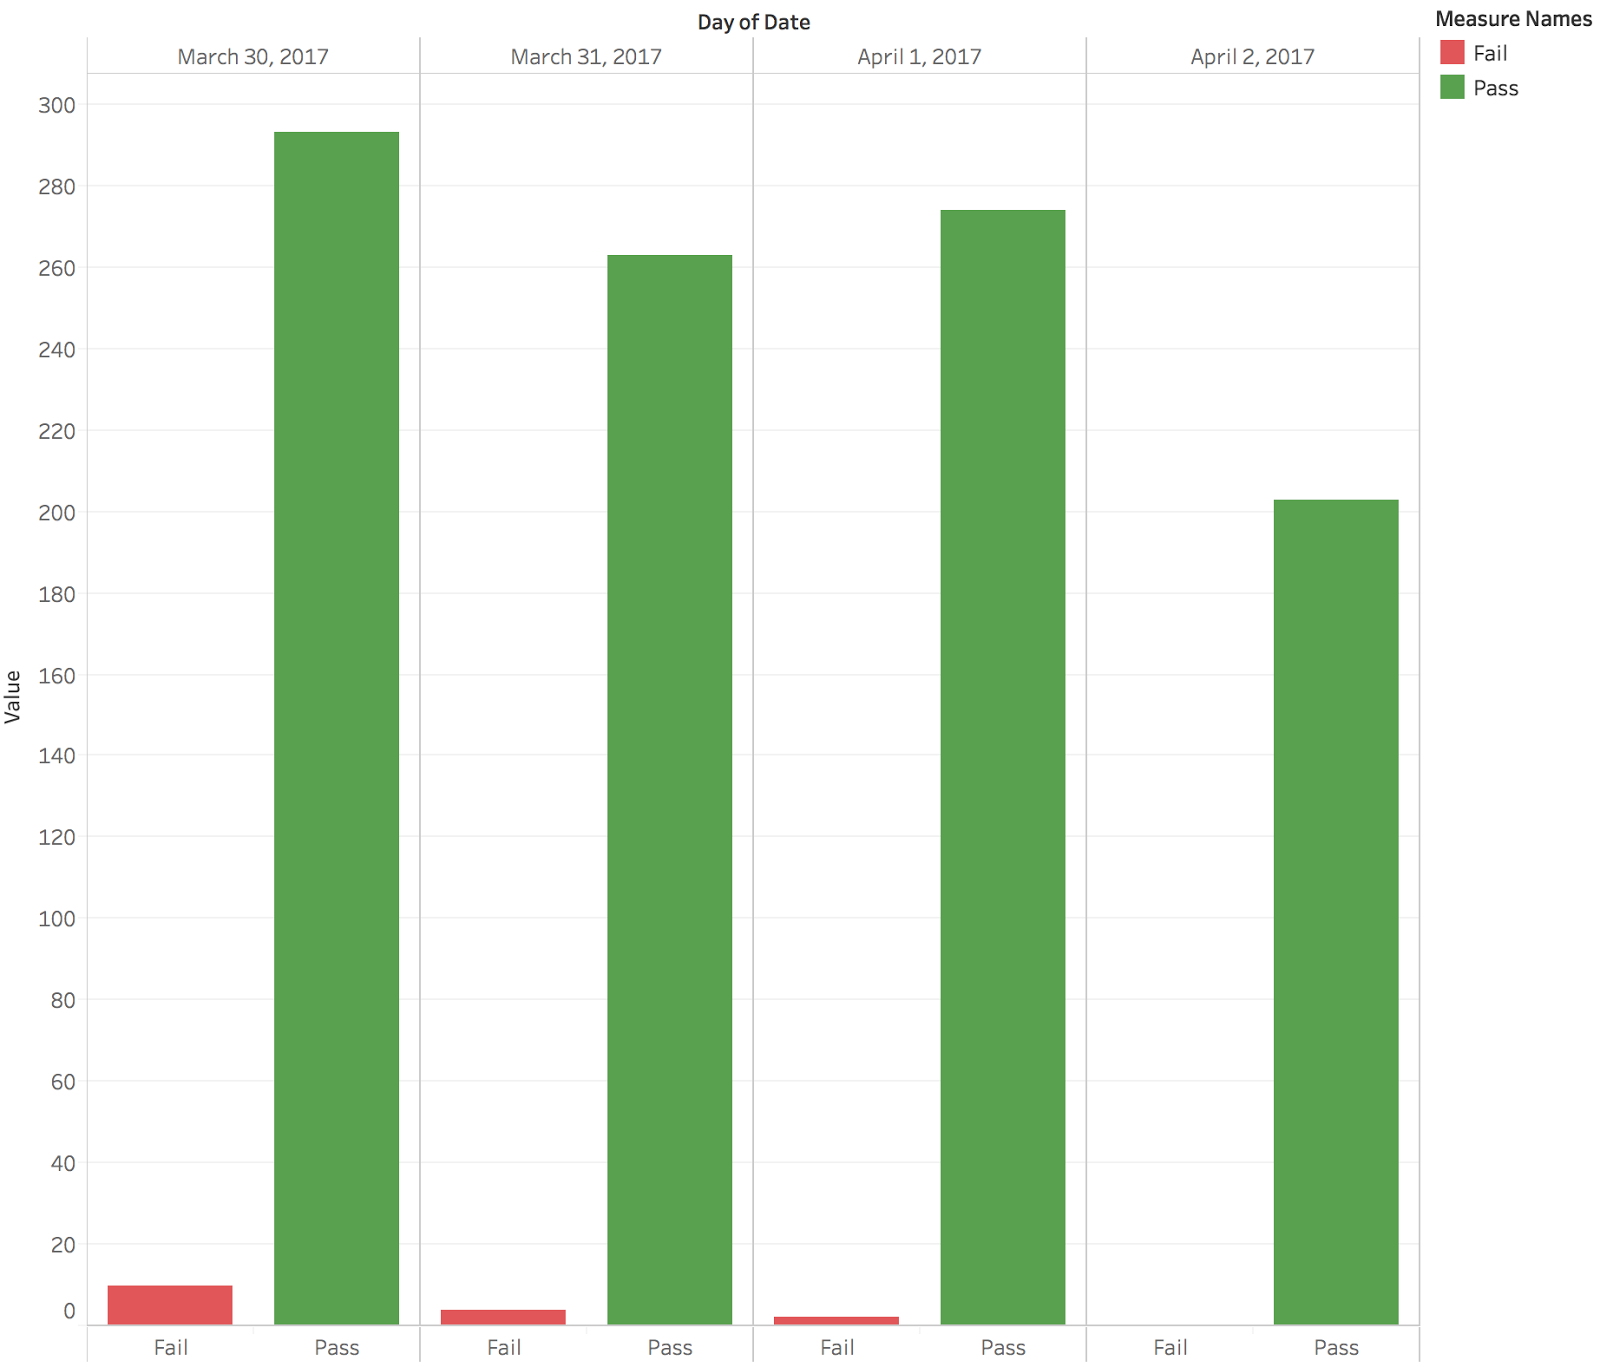 A bar chart comparing the number of tests that passed and failed for every day between March 30th and April 2nd.